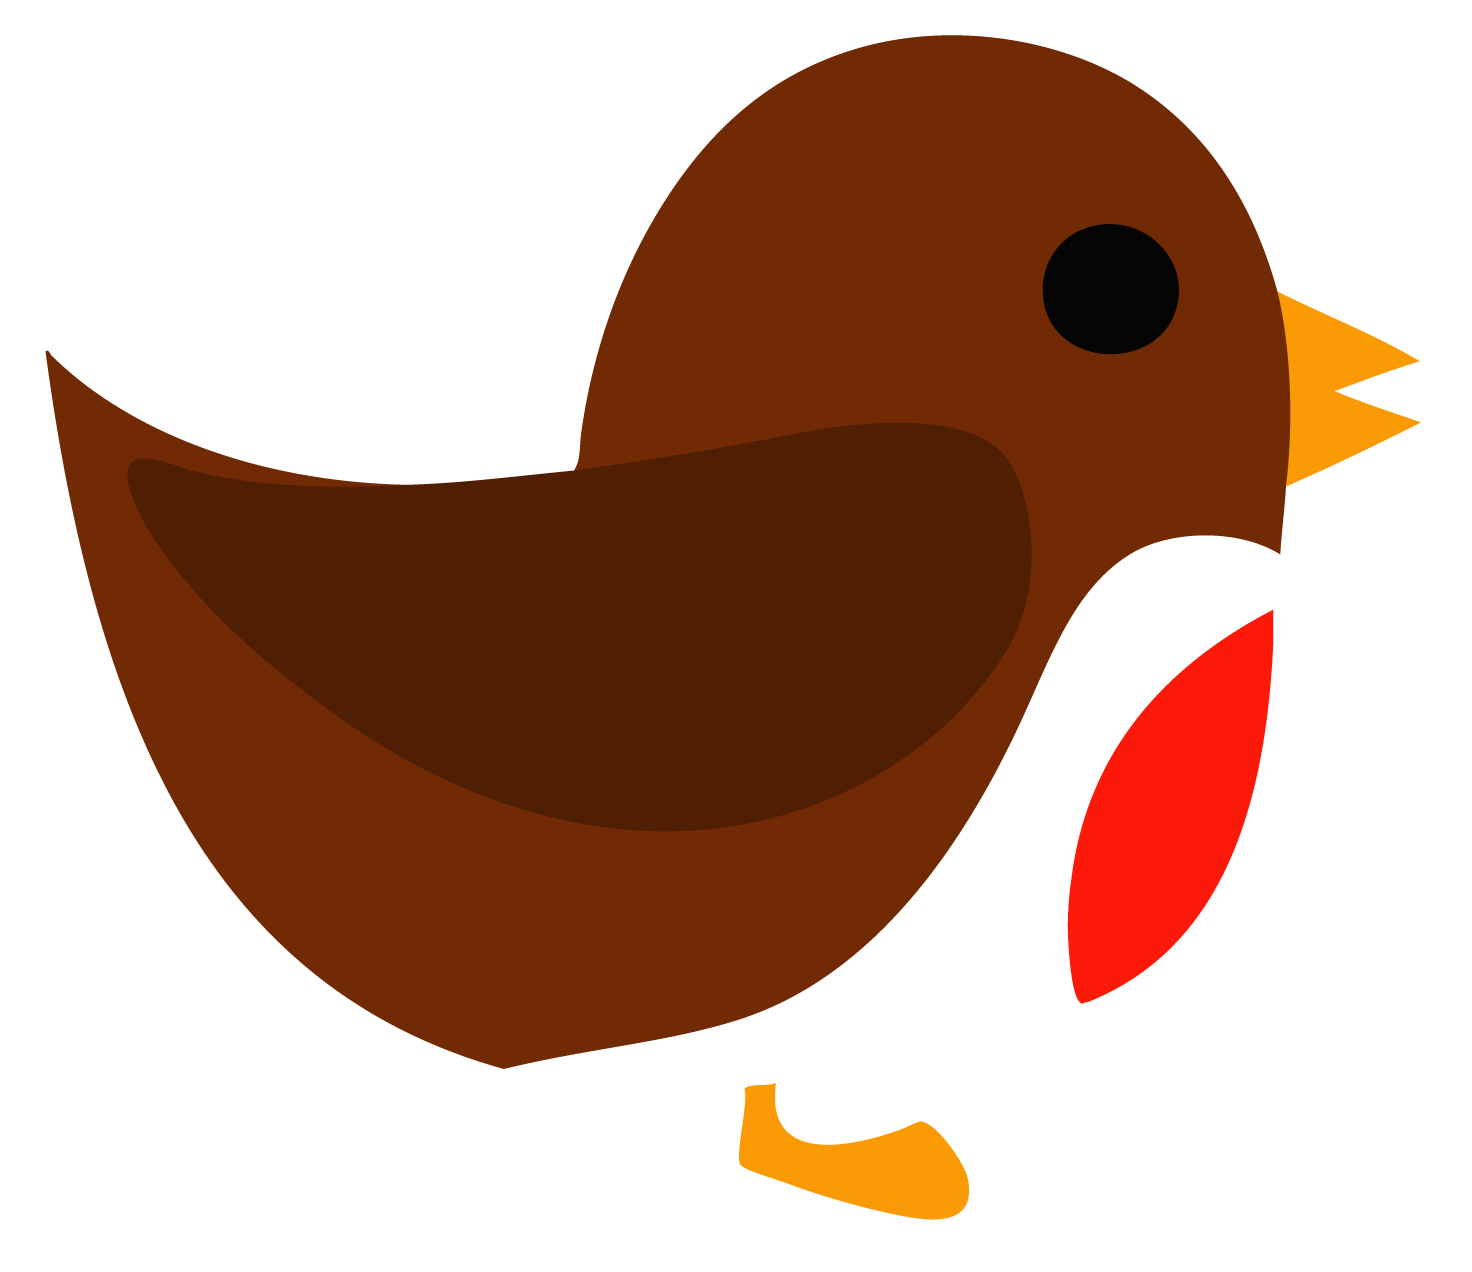 American Robin Clipart at GetDrawings.com.